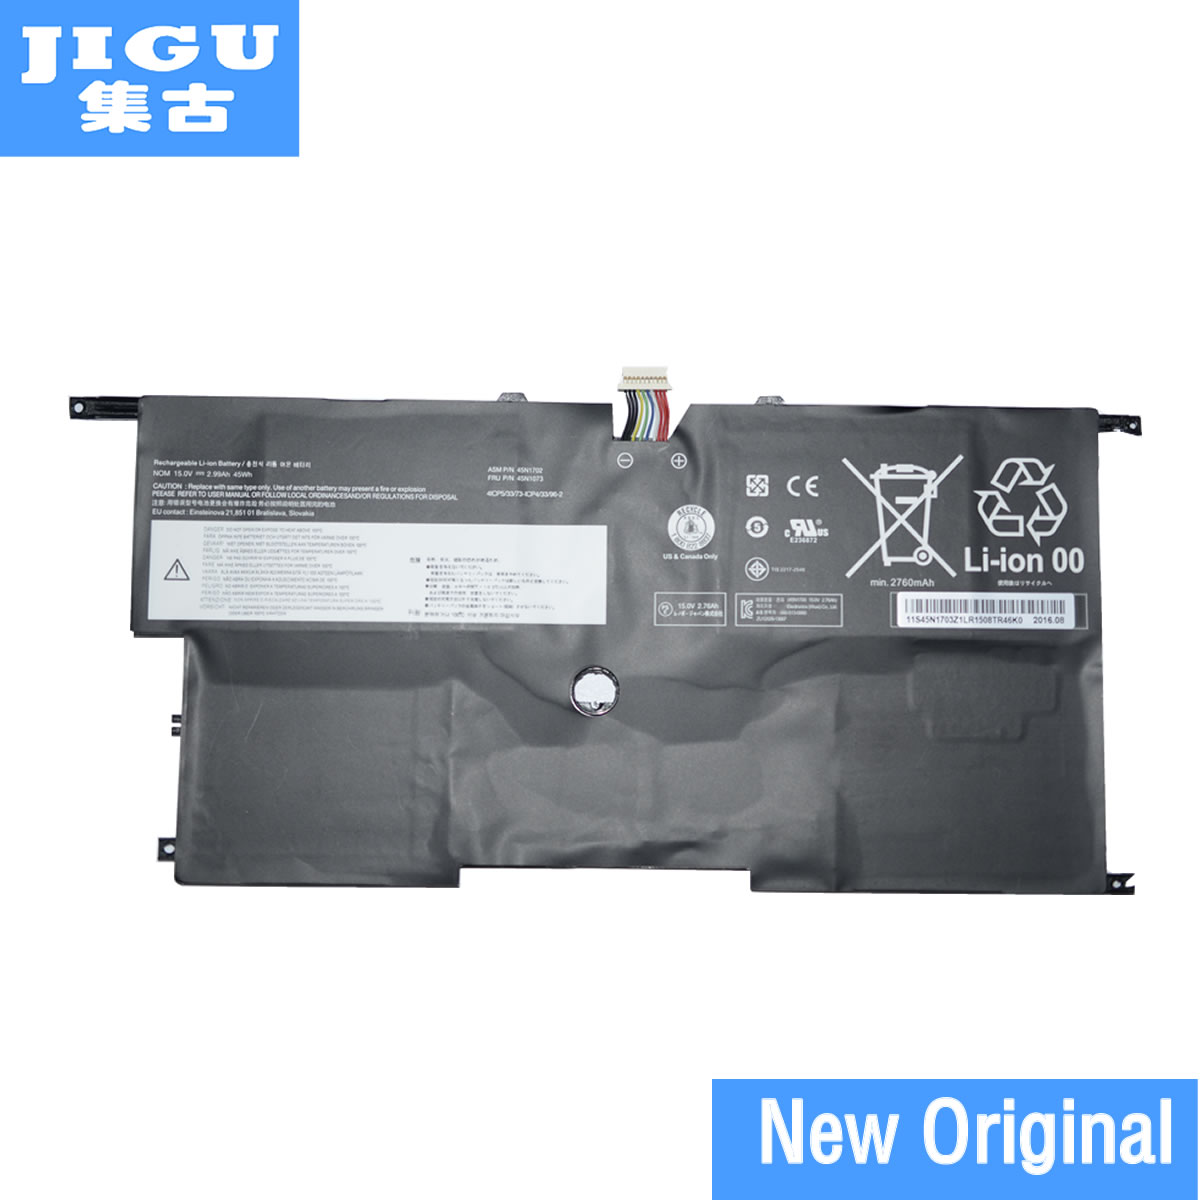 JIGU Original Laptop Battery 45N1702 45N1703 FOR LENOVO For ThinkPad X1 Carbon 14 8v 46wh new original laptop battery for lenovo thinkpad x1c carbon 45n1070 45n1071 3444 3448 3460